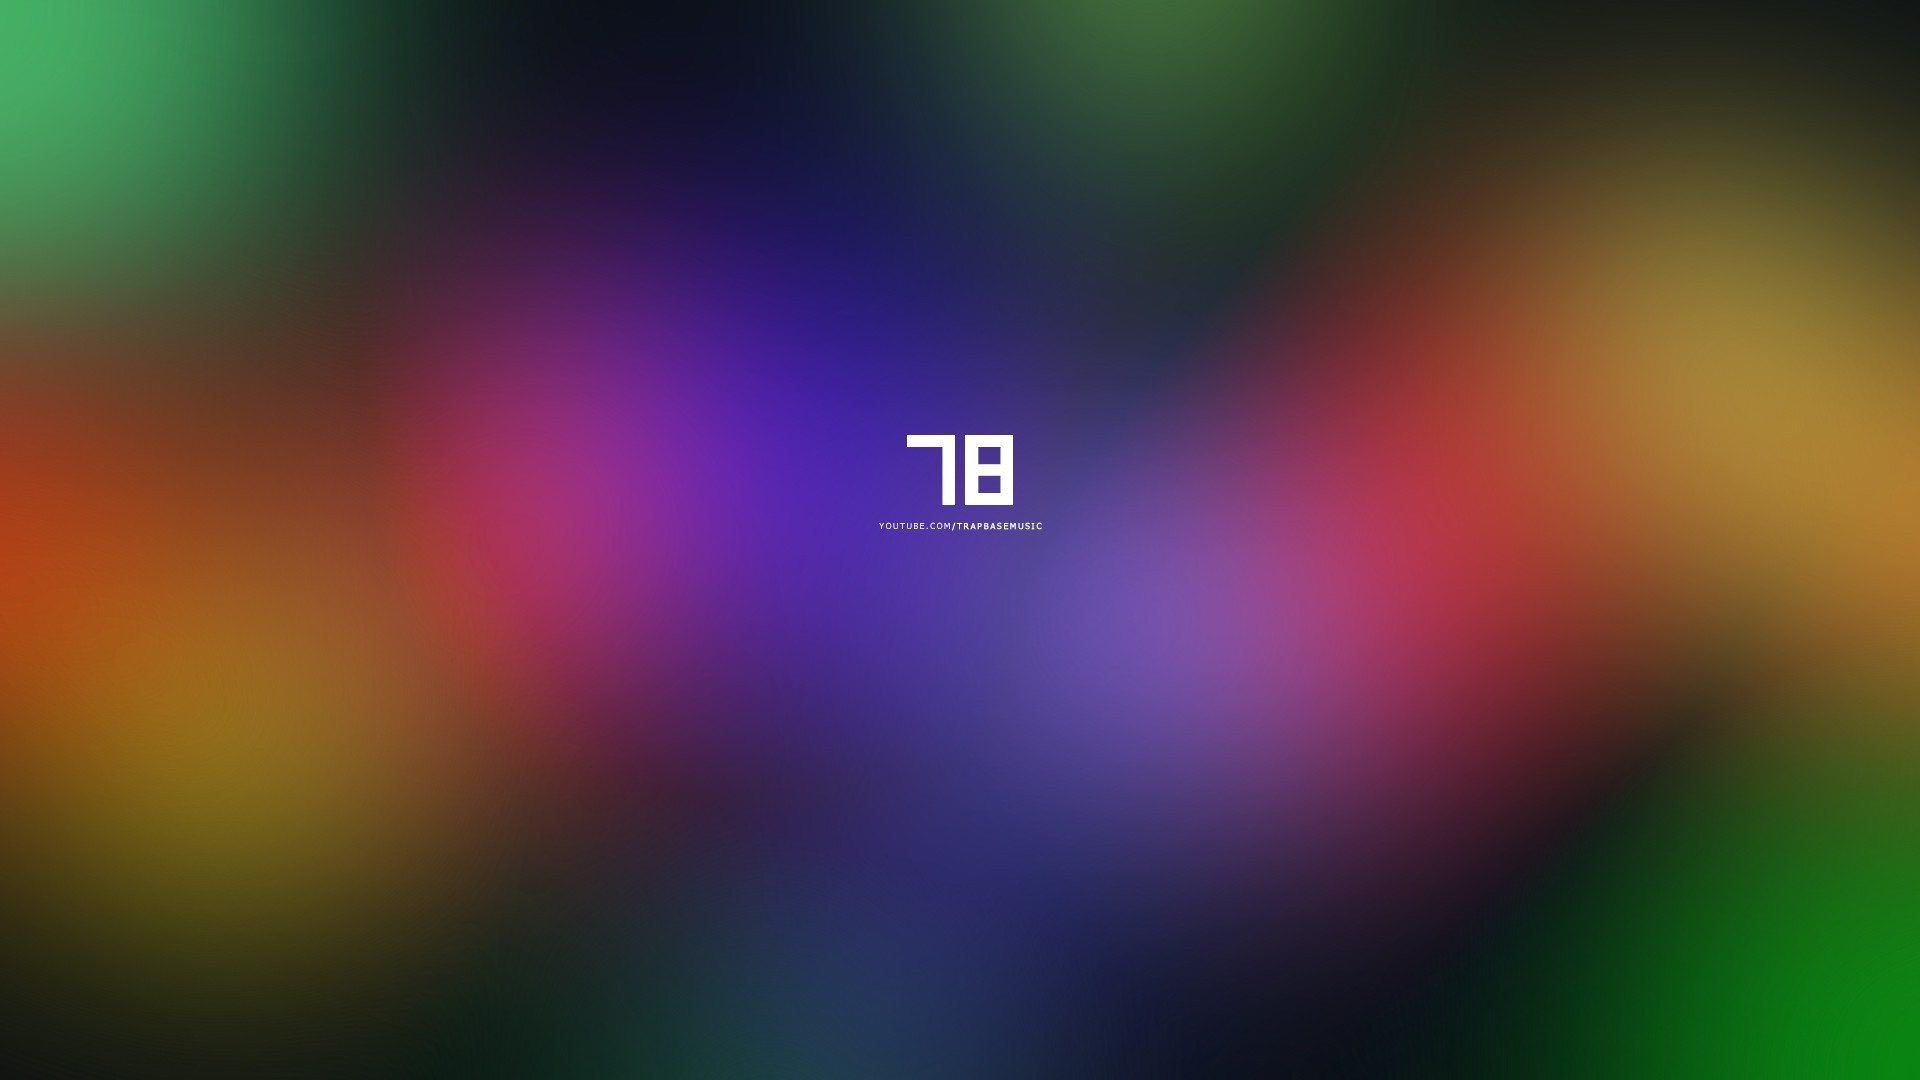 Res: 1920x1080, The number 78 on the rainbow background